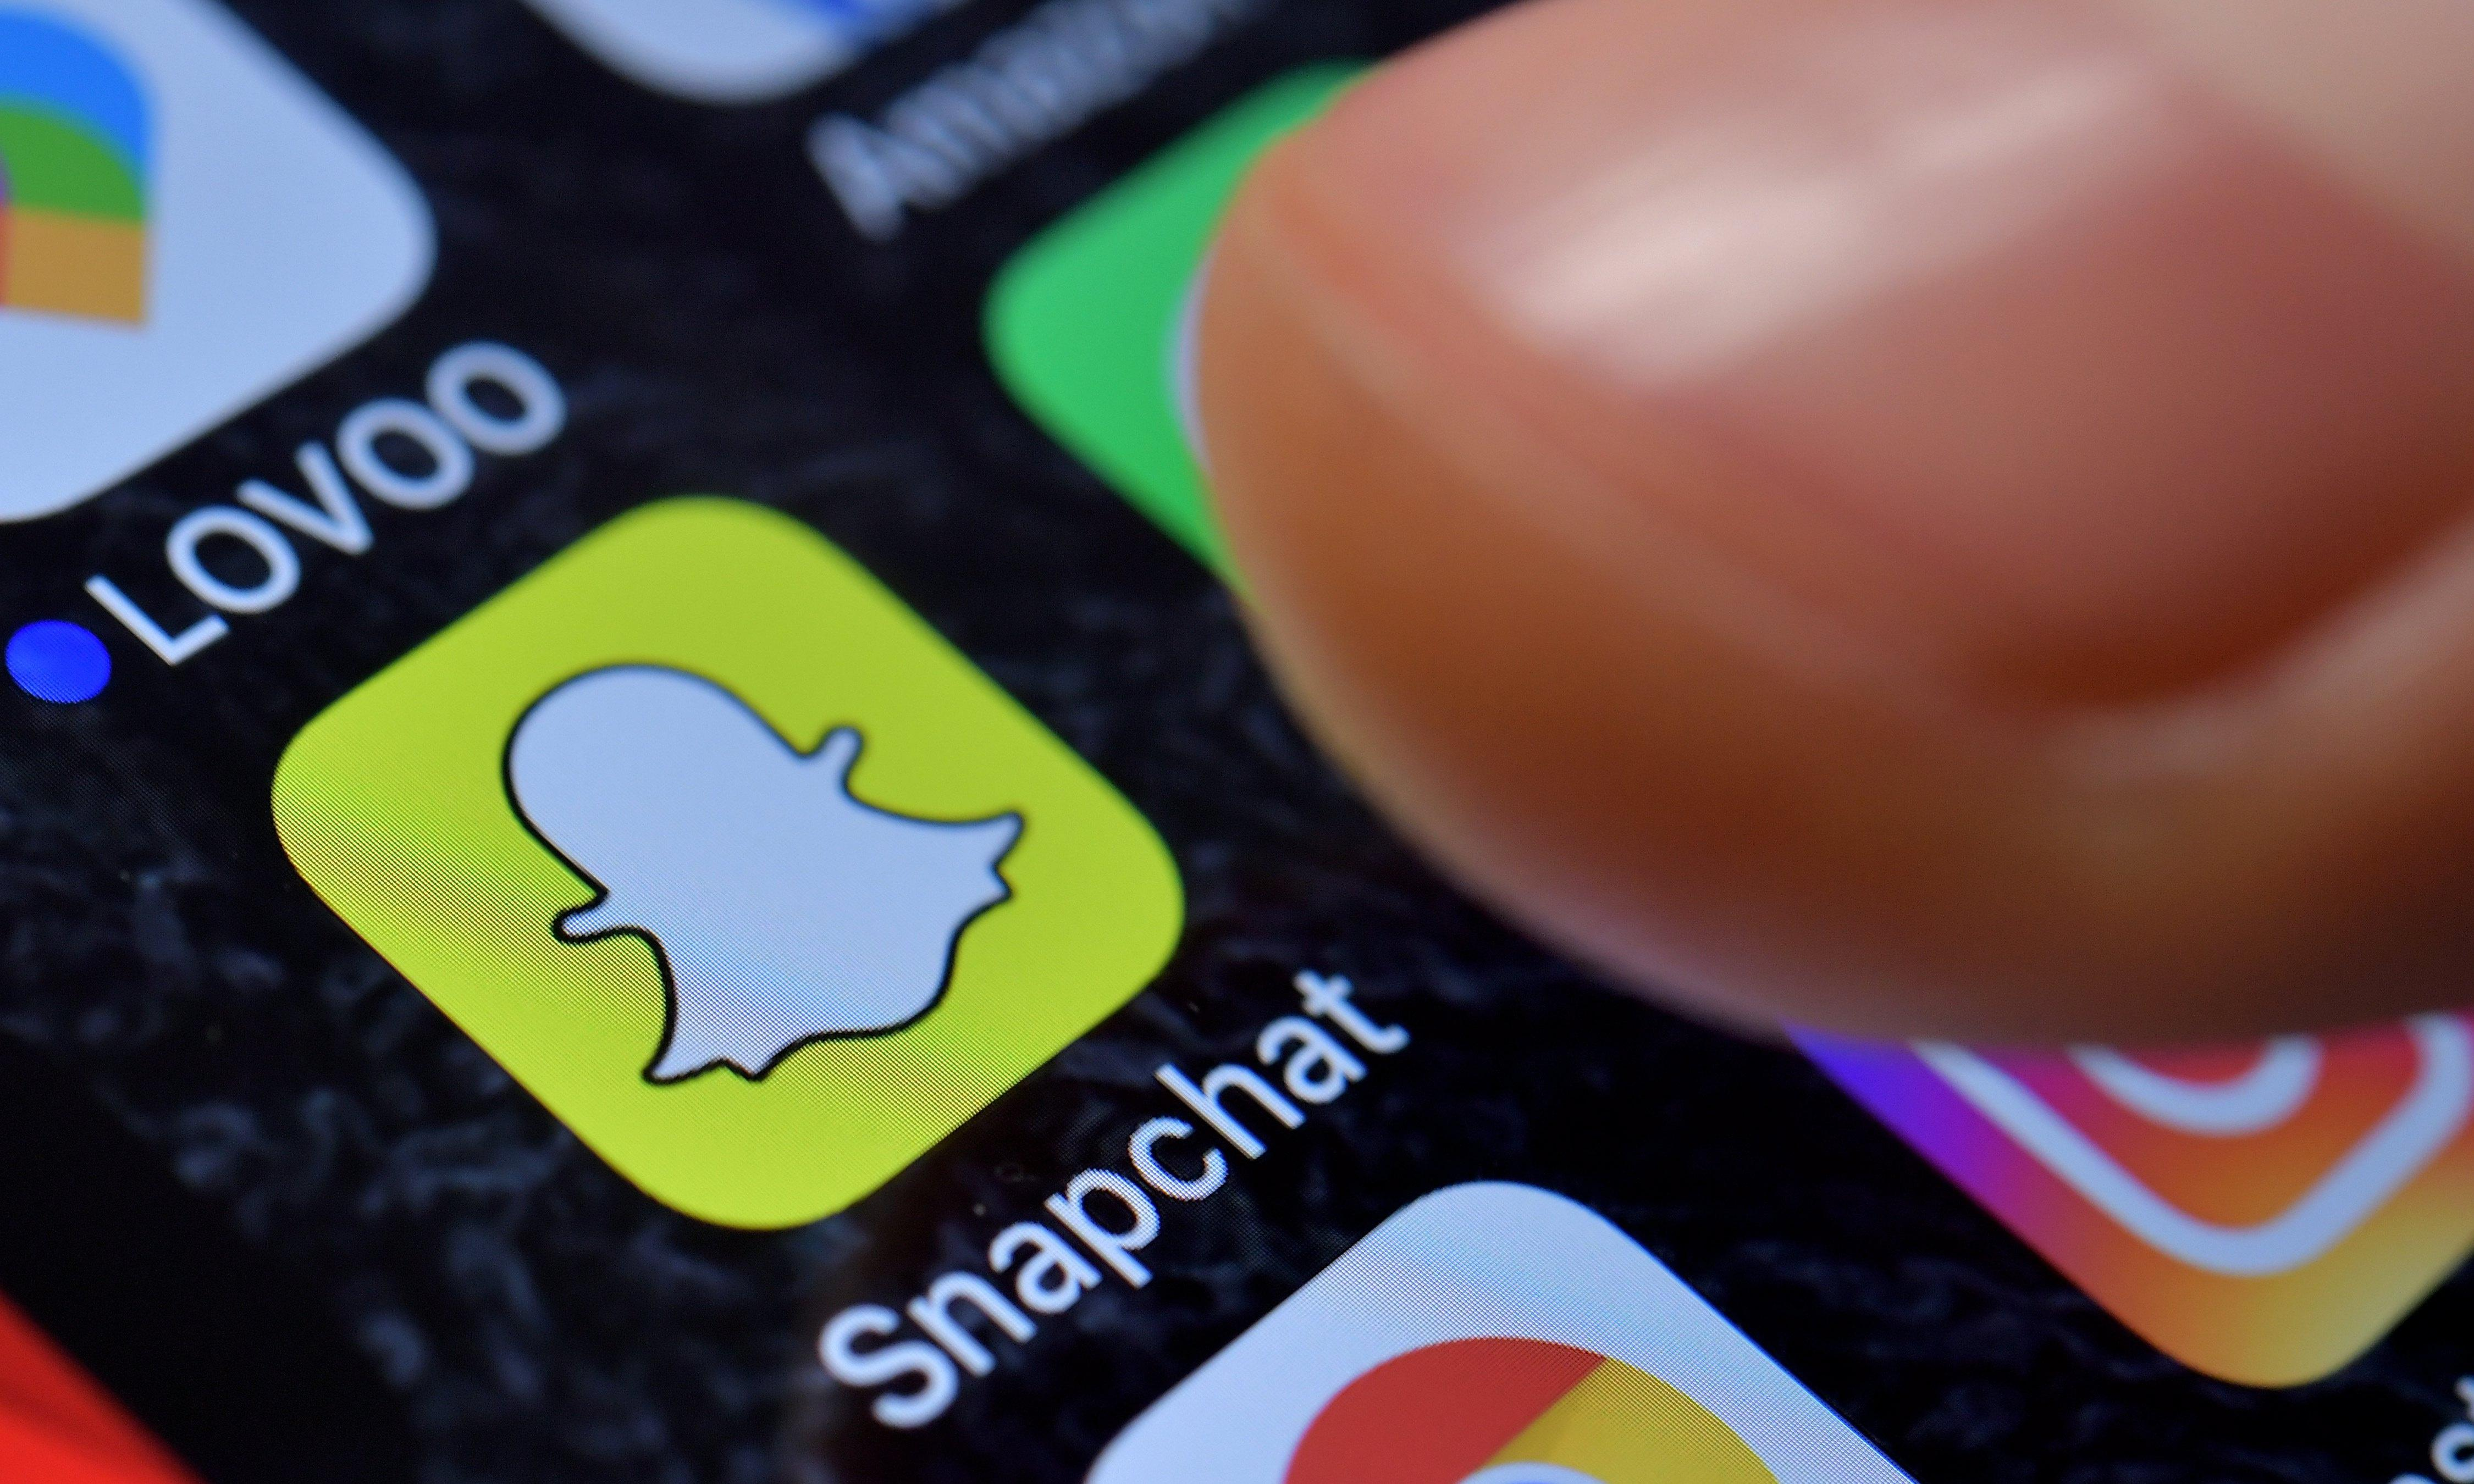 Facebook is being eclipsed by its youthful rival Snapchat